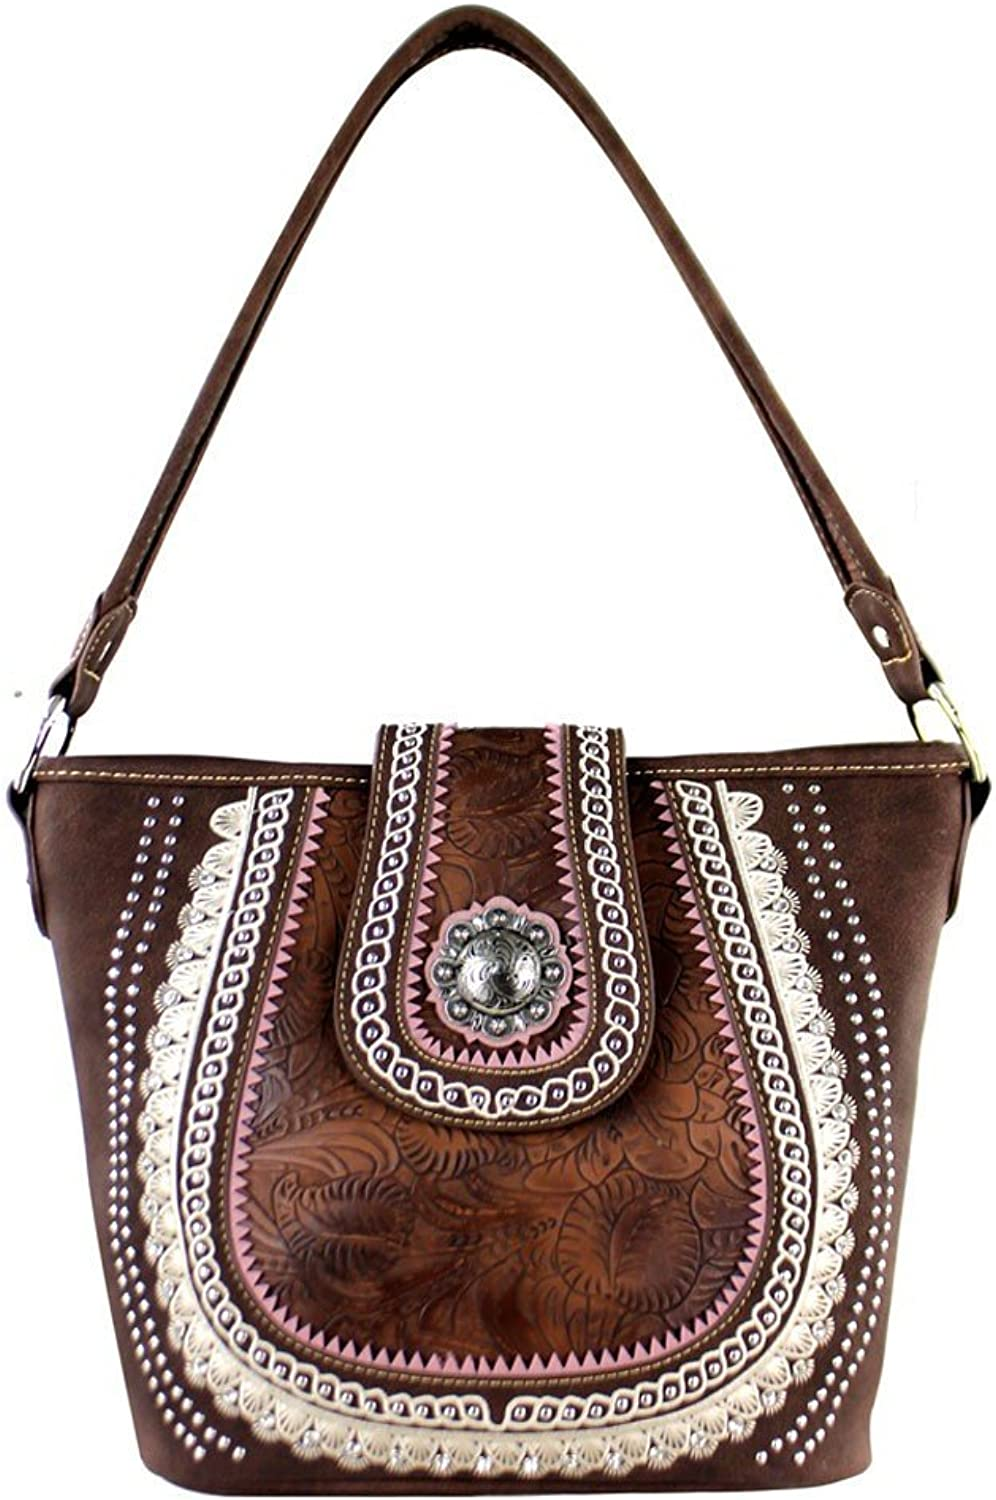 MW357G916 Montana West Concho Collection Concealed Handgun Collection Tote